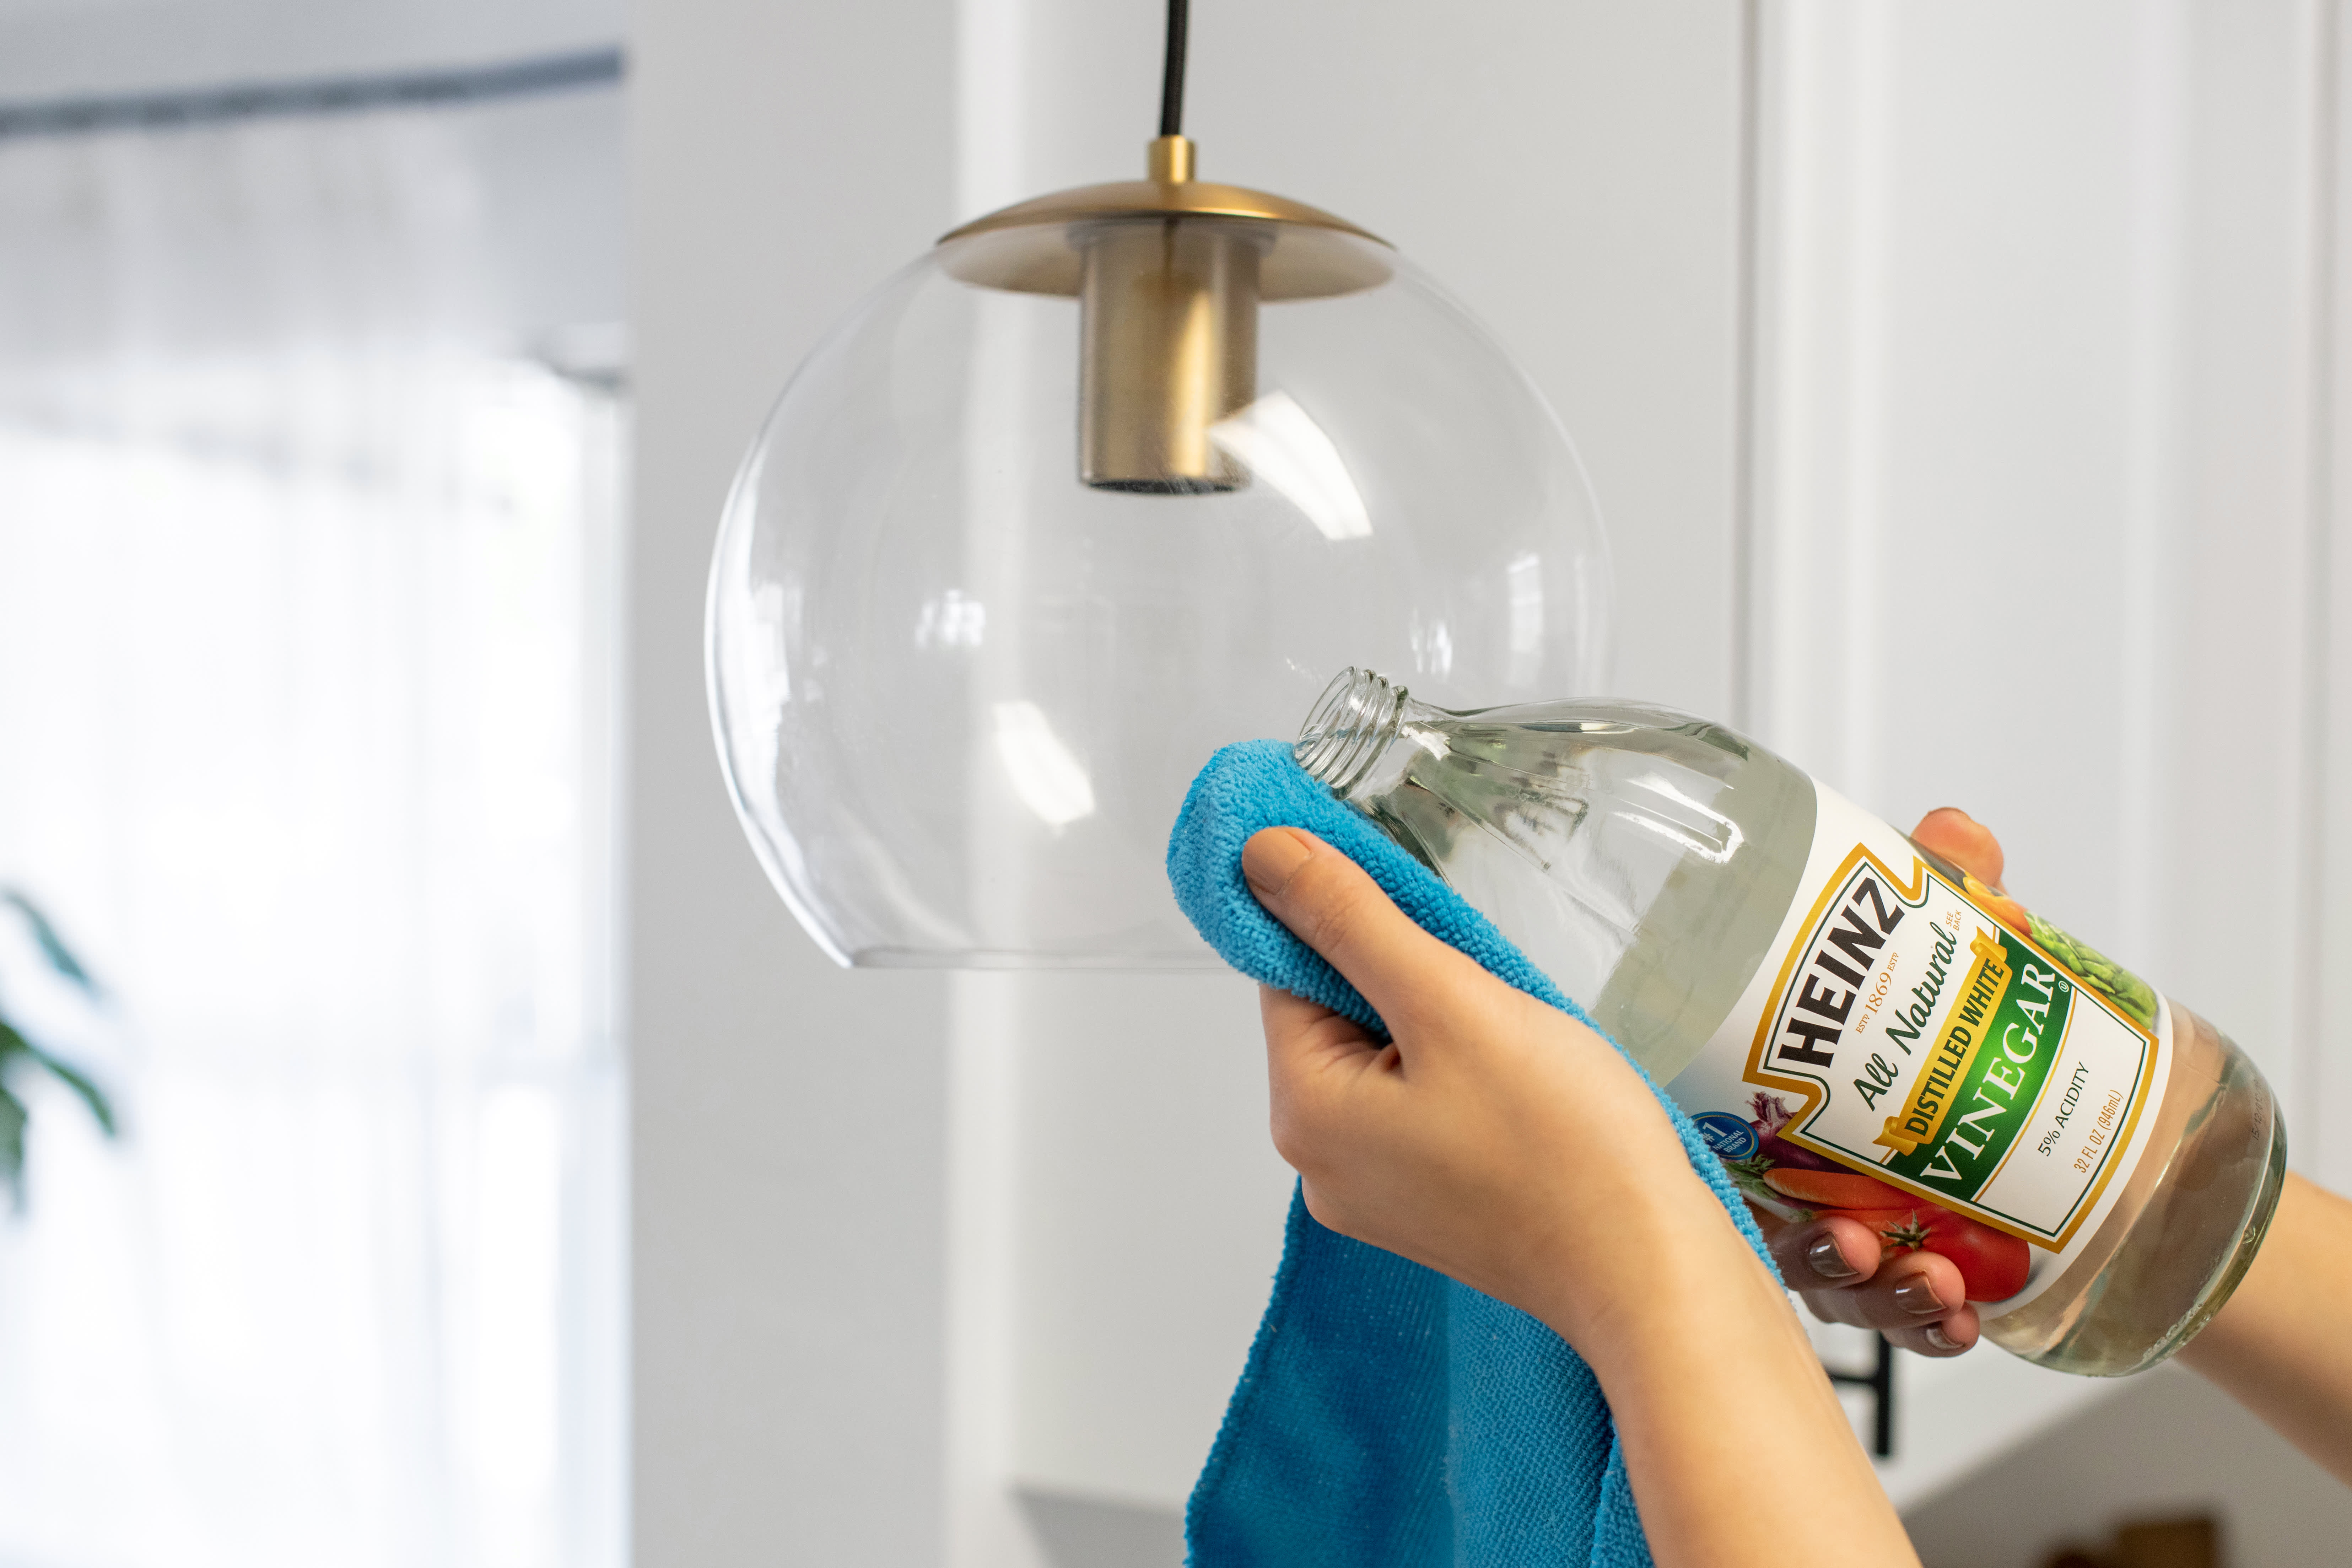 How To Clean Those Greasy Glass Shades on Your Kitchen's Pendant Lights: gallery image 6